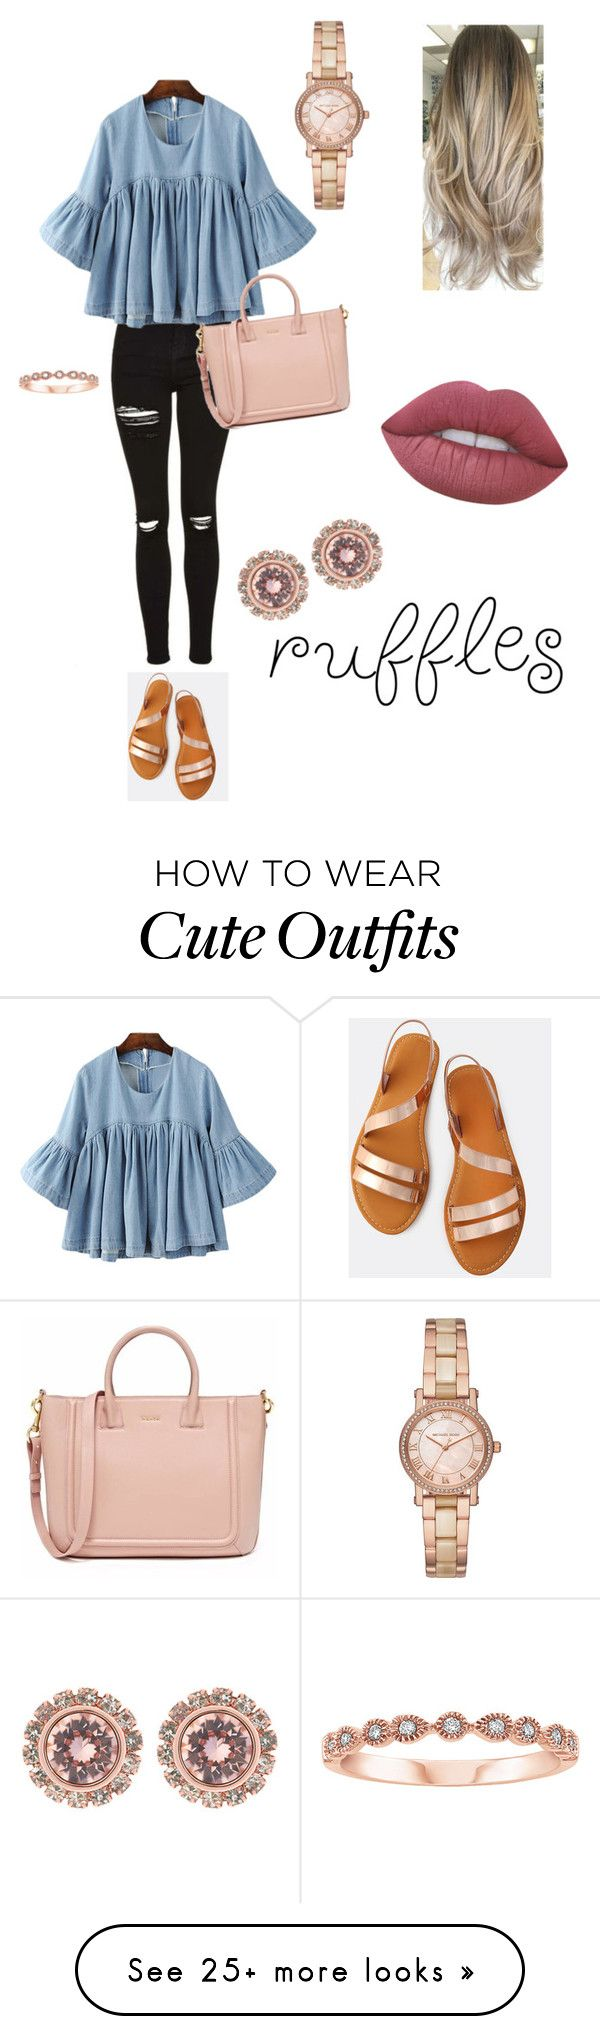 """Untitled #3"" by kaylahight2294 on Polyvore featuring Michael Kors, Ted Baker and Lime Crime"